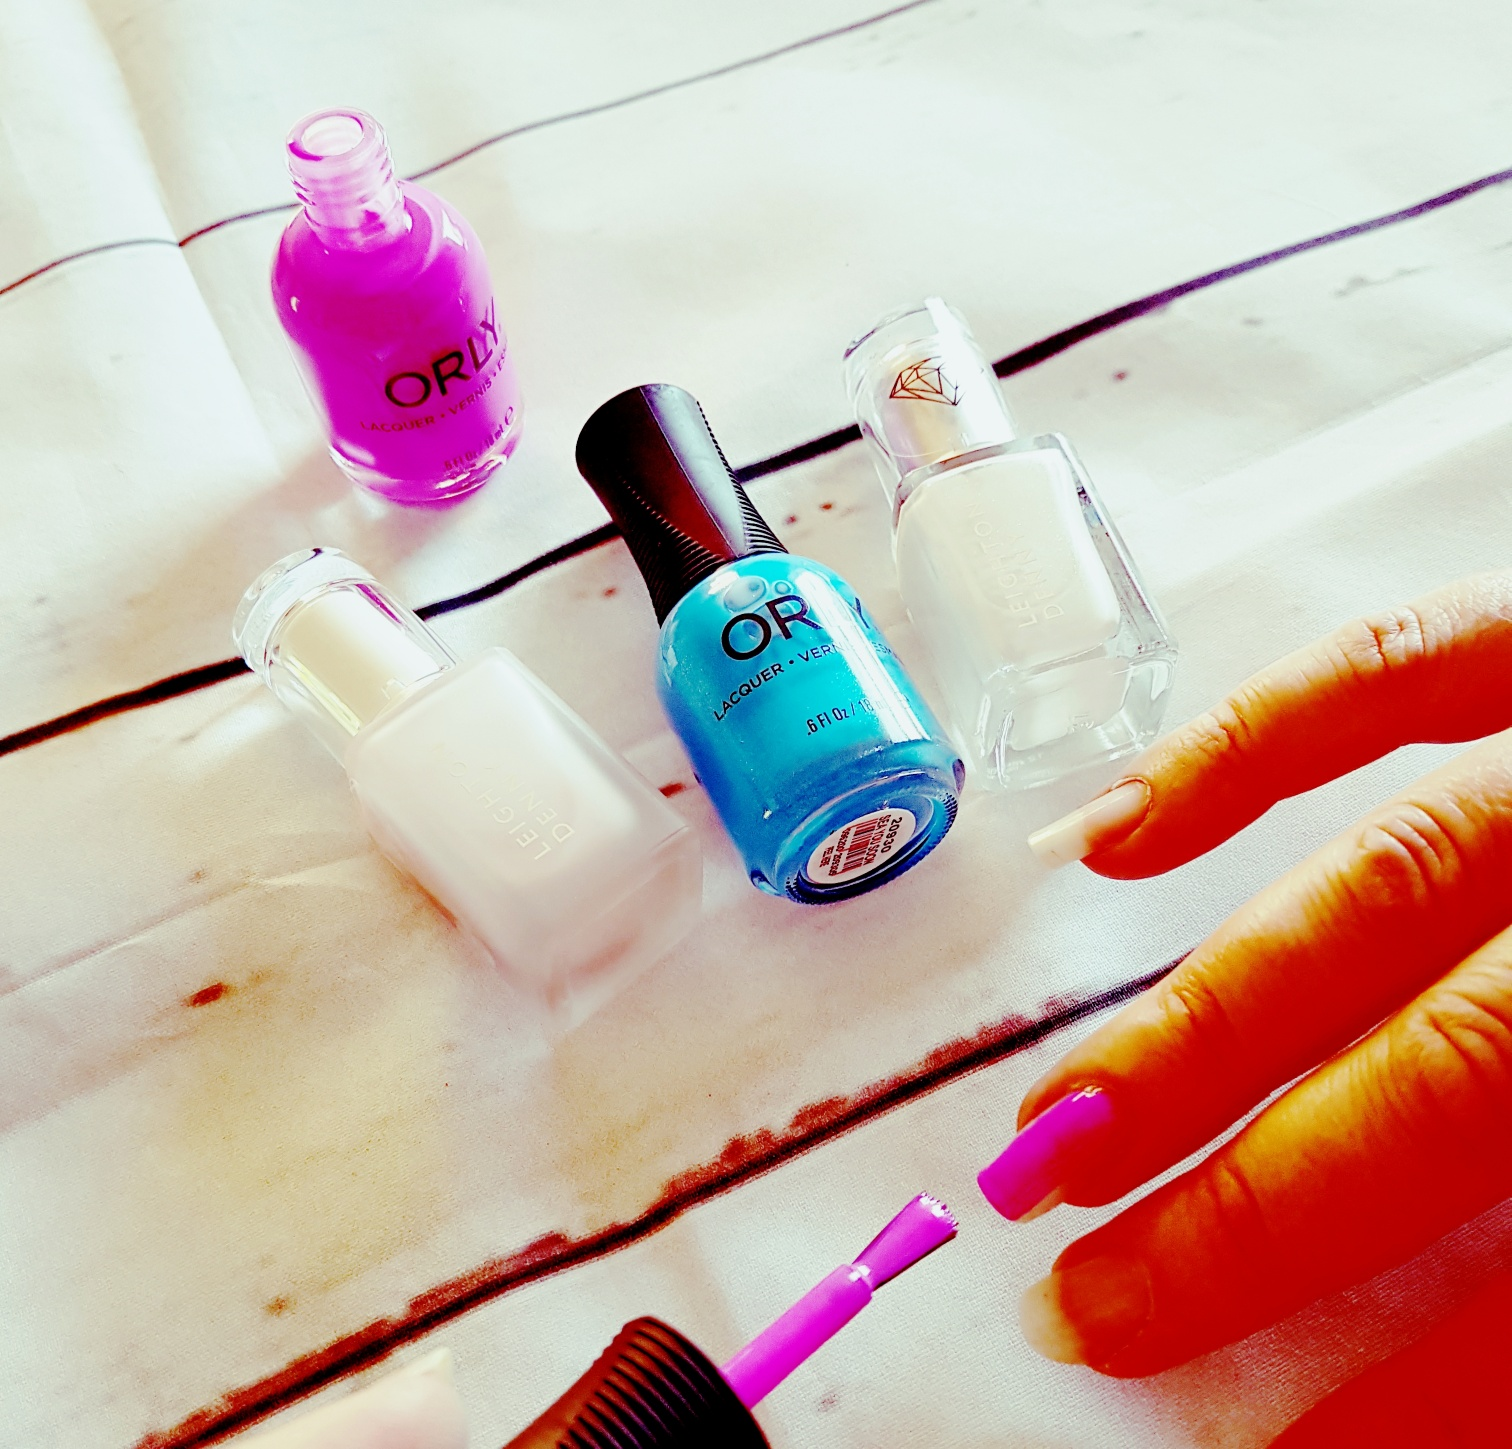 brighten up those mum nails